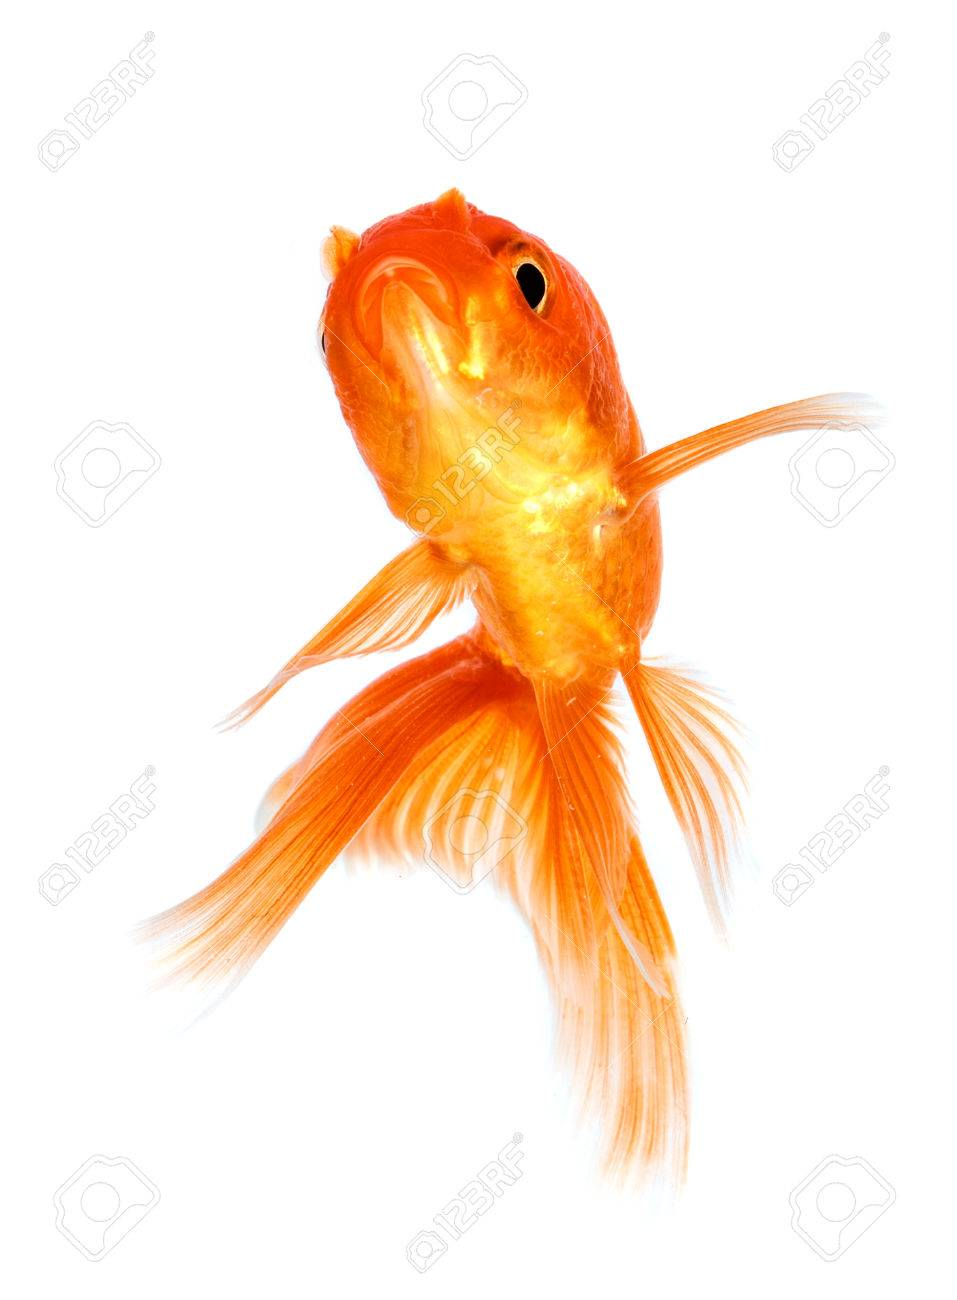 Gold fish isolated on a white background. Stock Photo - 22285547